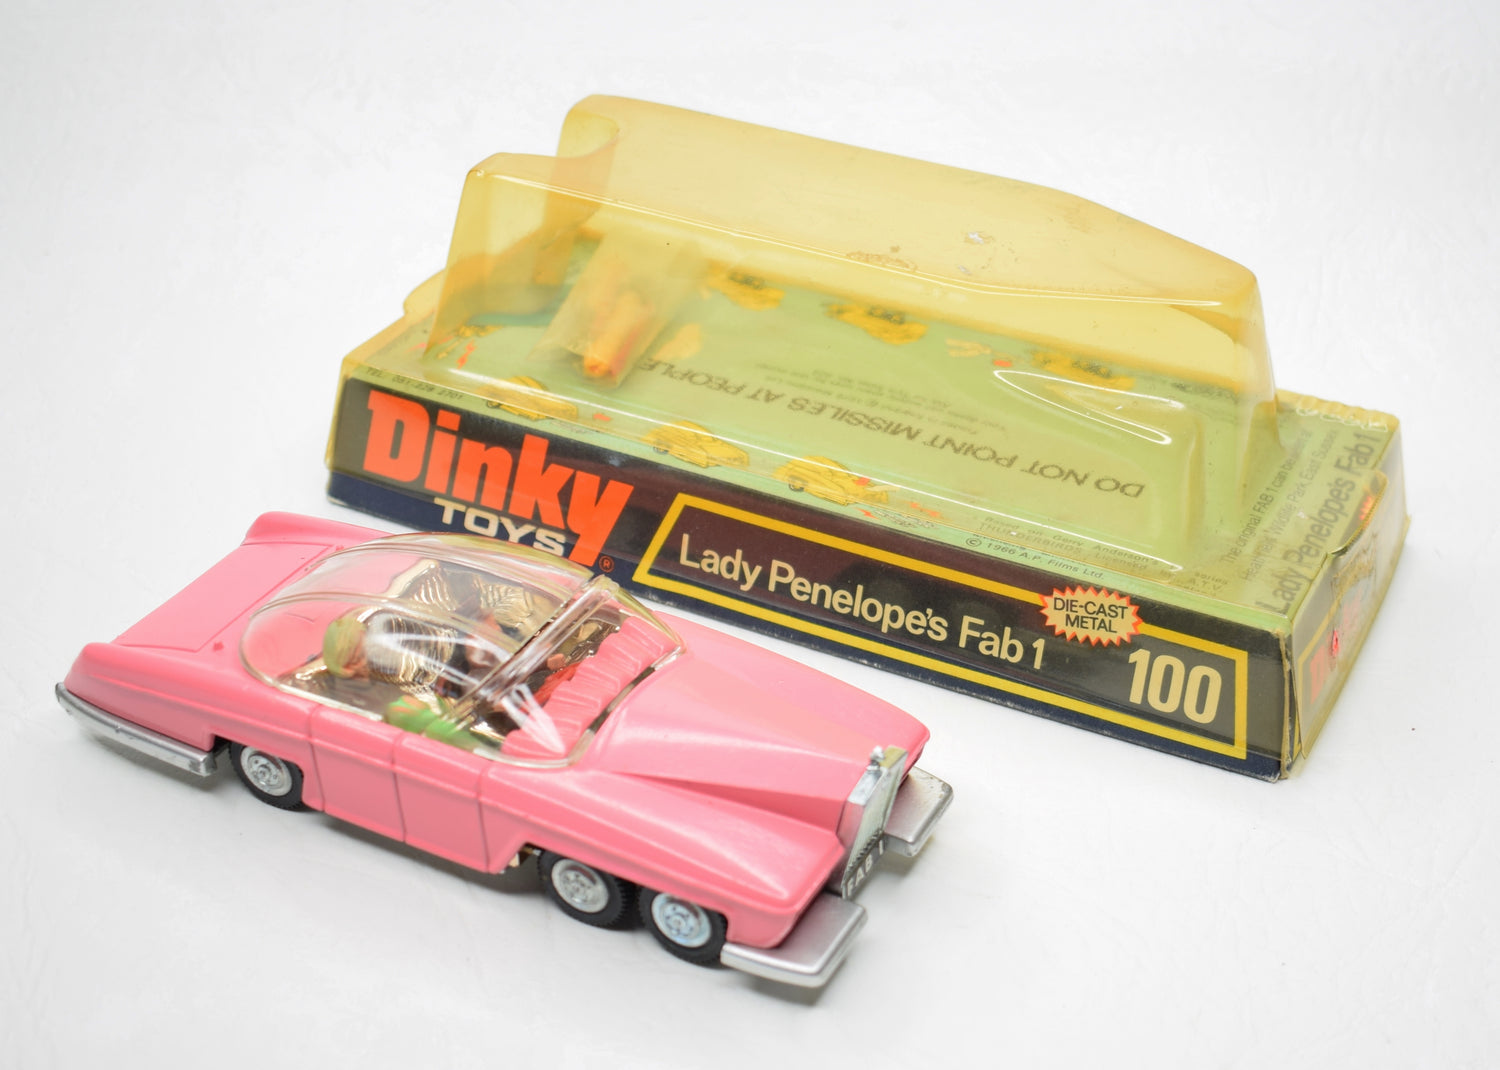 Dinky toys 100 Fab 1 Virtually Mint/Boxed (Pale pink)